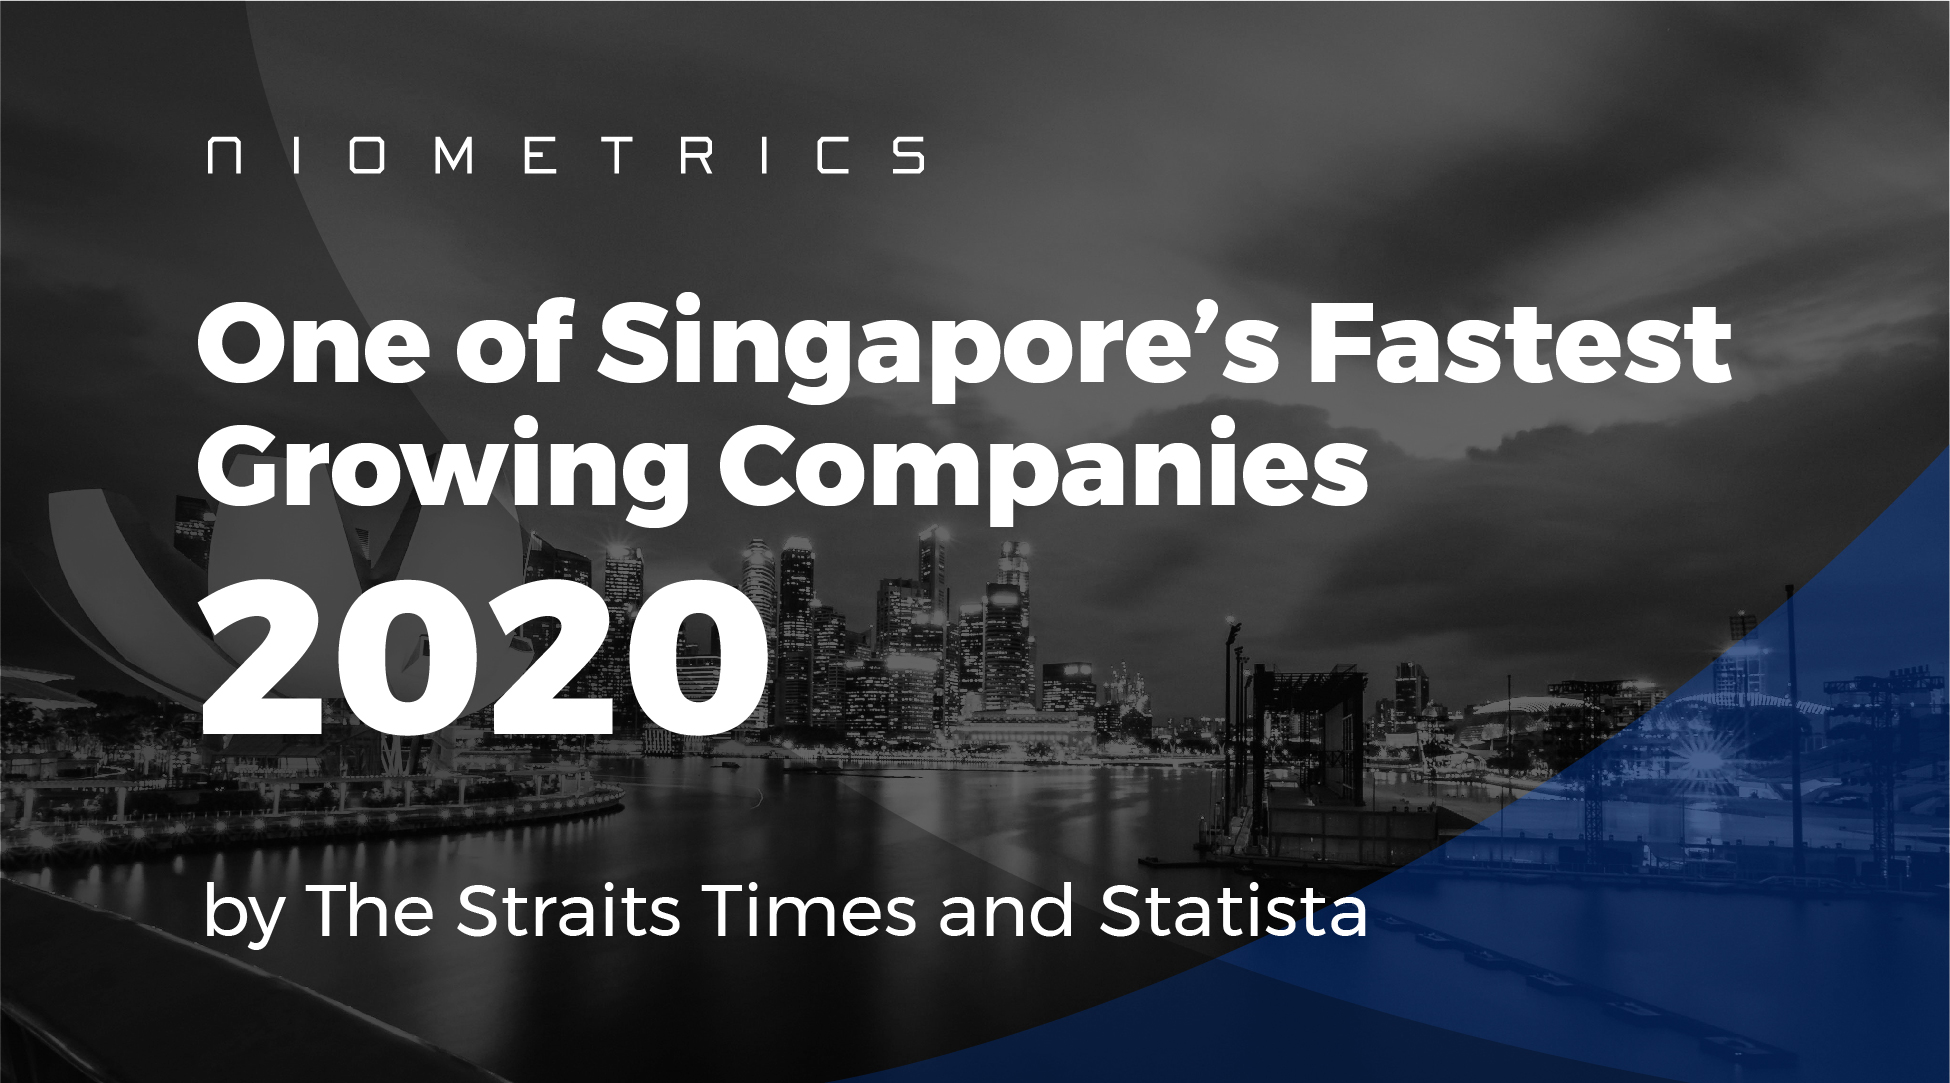 Straits Times Statista Singapore's Fastest Growing Companies